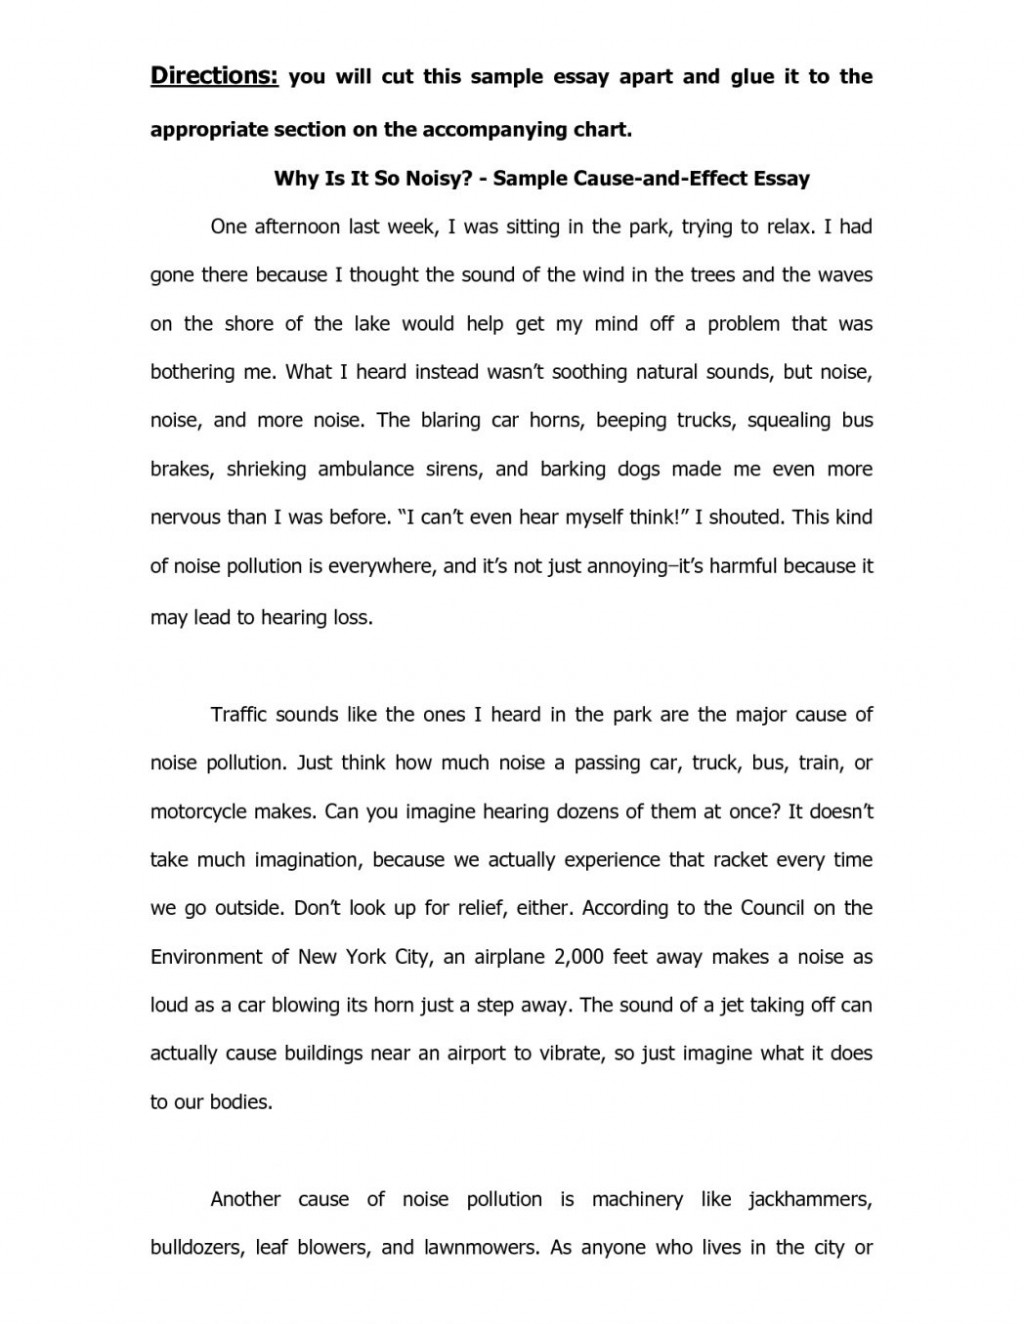 004 Free Cv Template Word014 Cause And Effect Divorce Essay Causes Effects Of Cover L Example Sample Beautiful Conclusion Pdf Rate Large